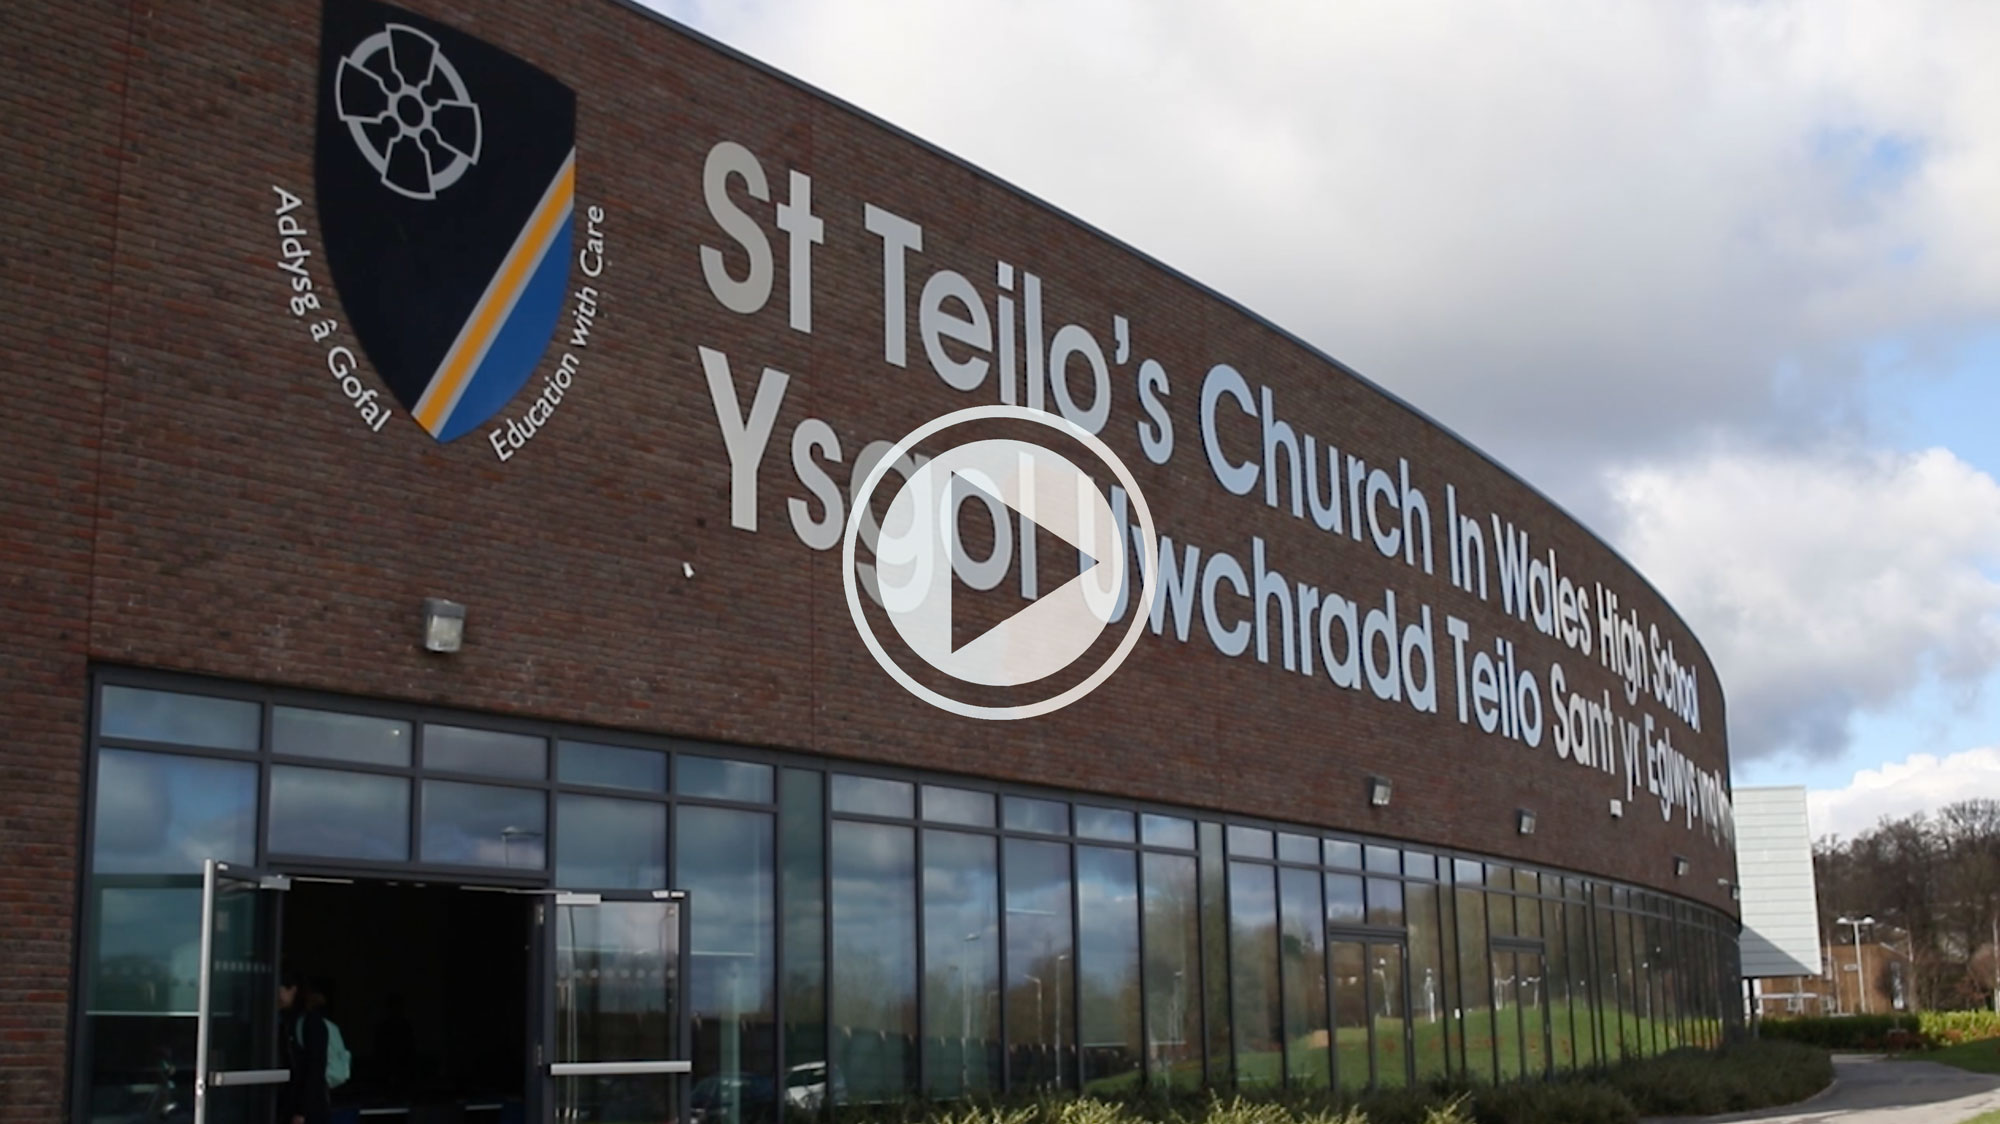 St Teilo's Video Play